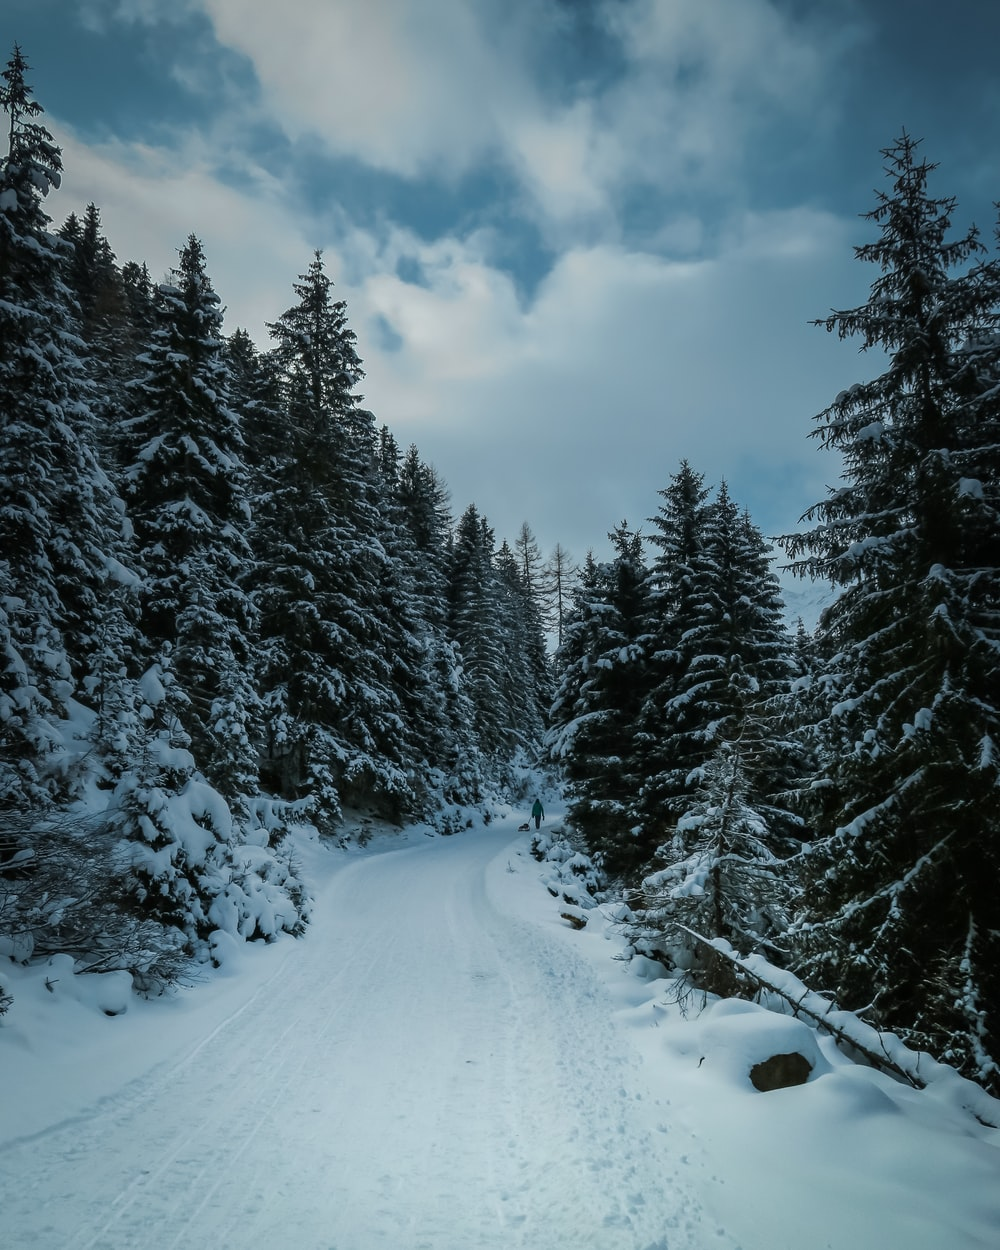 green pine trees with snow